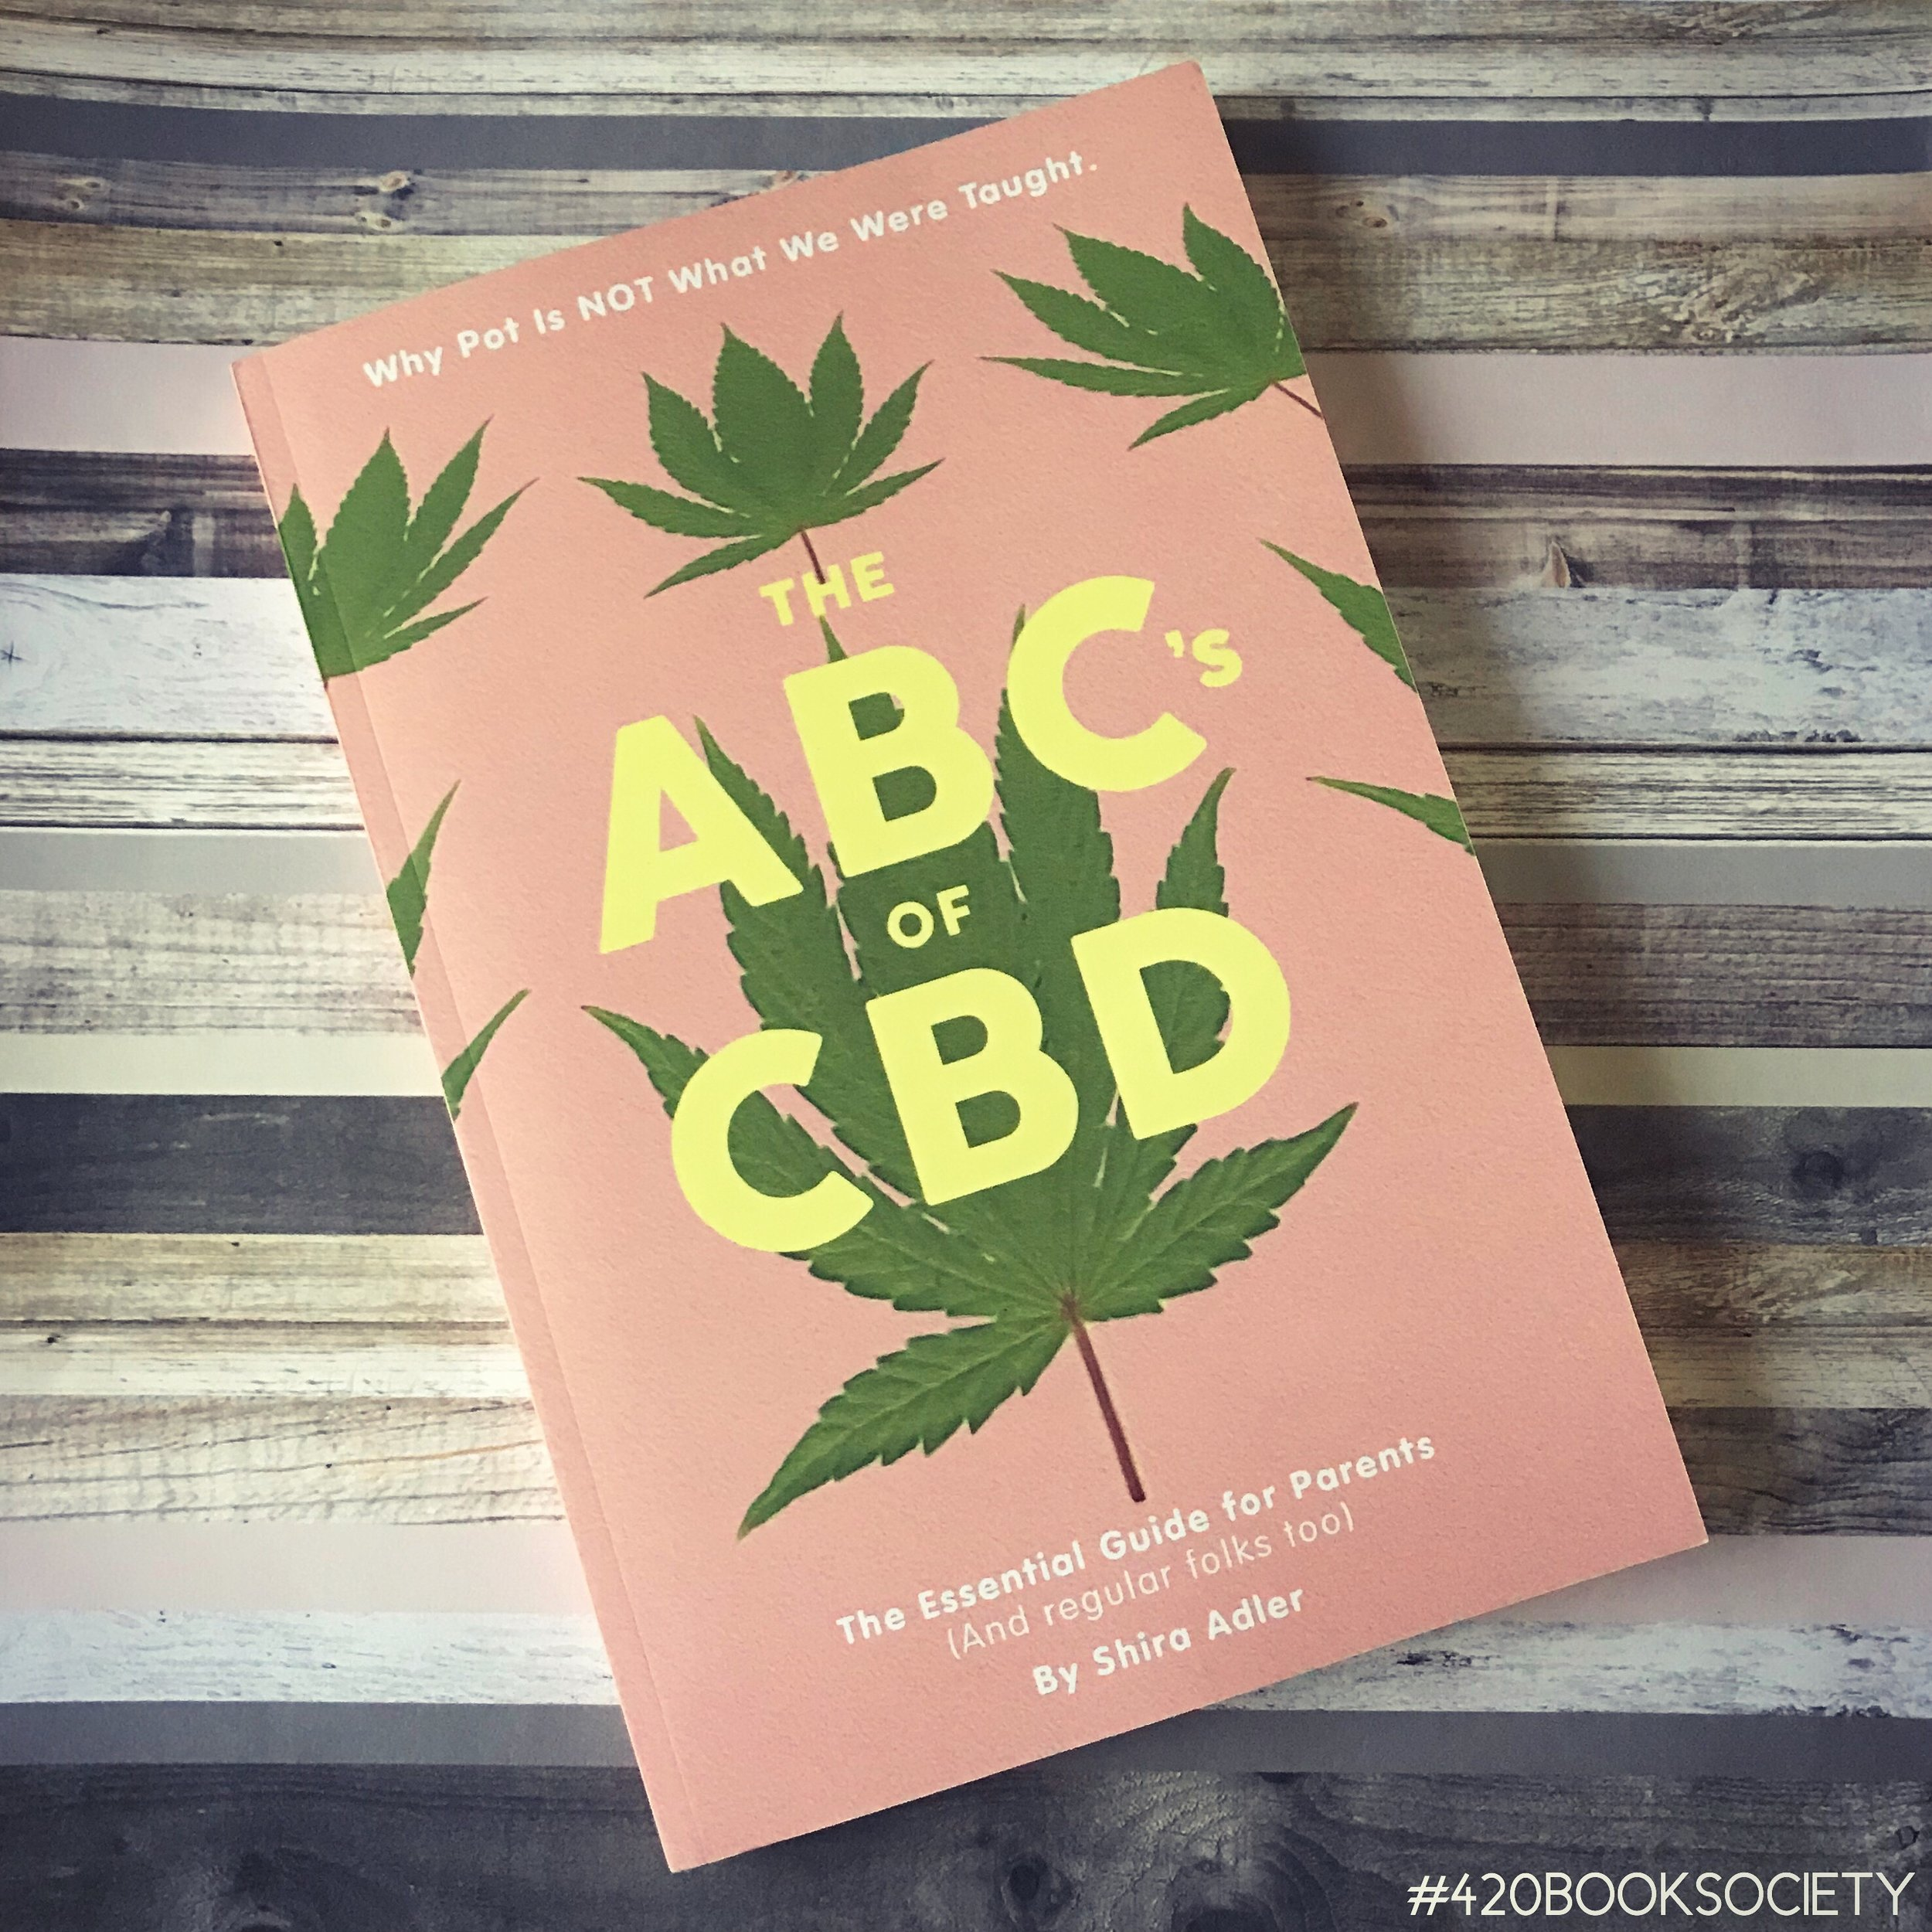 "April's membership will feature ""The ABC's of CBD"" by Shira Alder, ""The Essential Guide for Parents"" (and regular folks too)! This book is a practical and informative guide to understanding CBD and ""Why Pot is Not What We We're Taught"" and how this magnificent plant can help make you better without getting you ""stoned""! This is a must read for anyone wanting to learn about CBD, Cannabis, Hemp and the therapeutic potentials. Also included in this month's membership is a, CBD-infused Body Butter, hand made by the author herself.  For more information on this and the complete product line including tinctures, CBD capsules and a complete line of aromatherapy sprays visit  www.shirasynergy.com ."